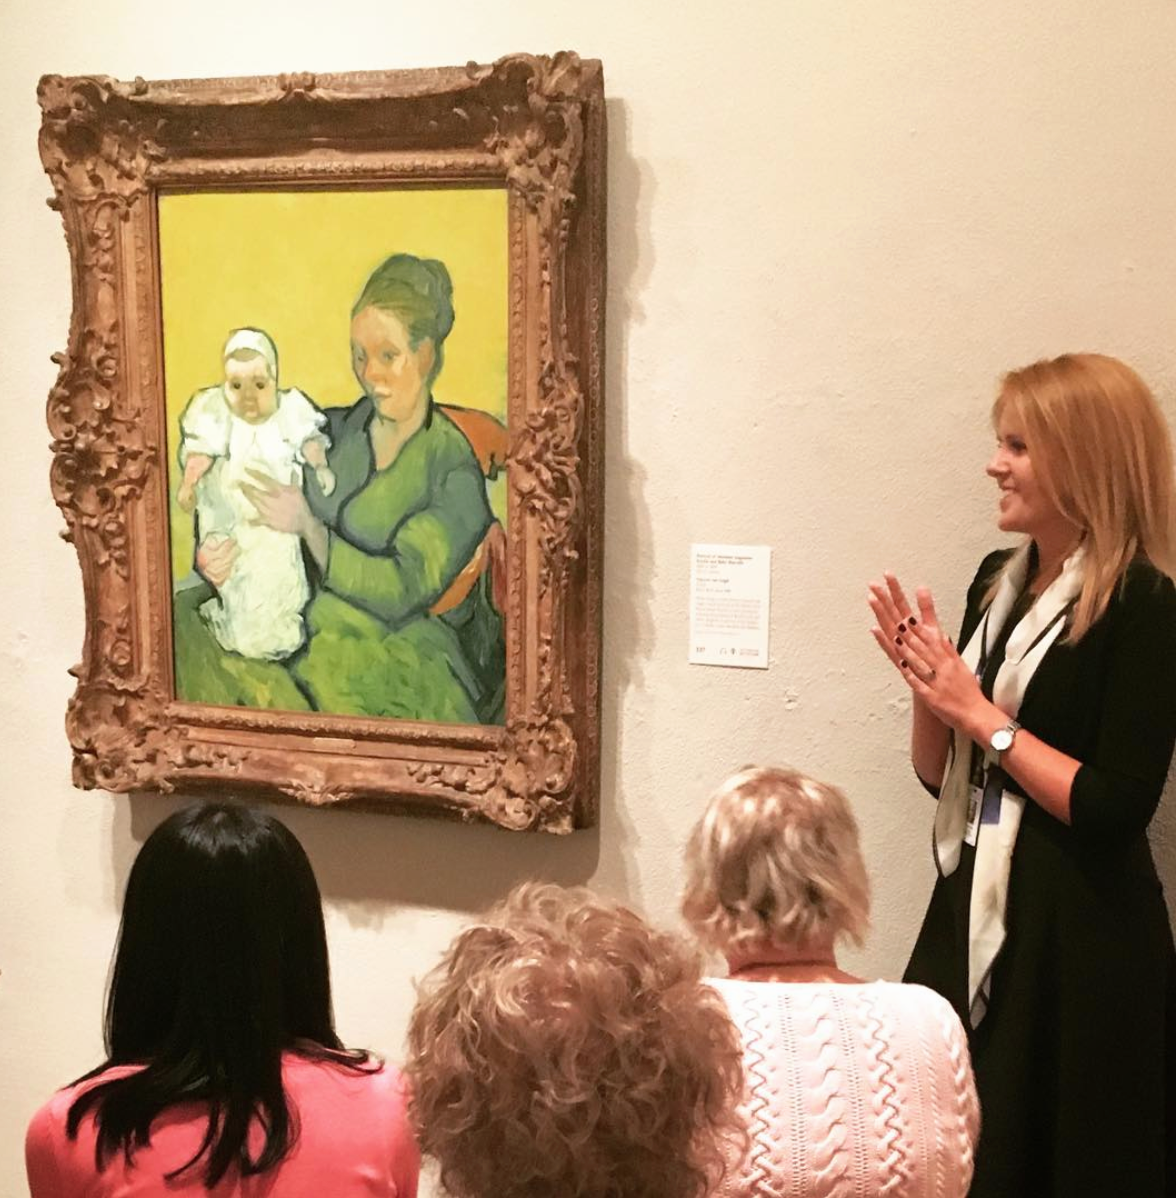 Gallery lecture at the Philadelphia Museum of Art, 2016.